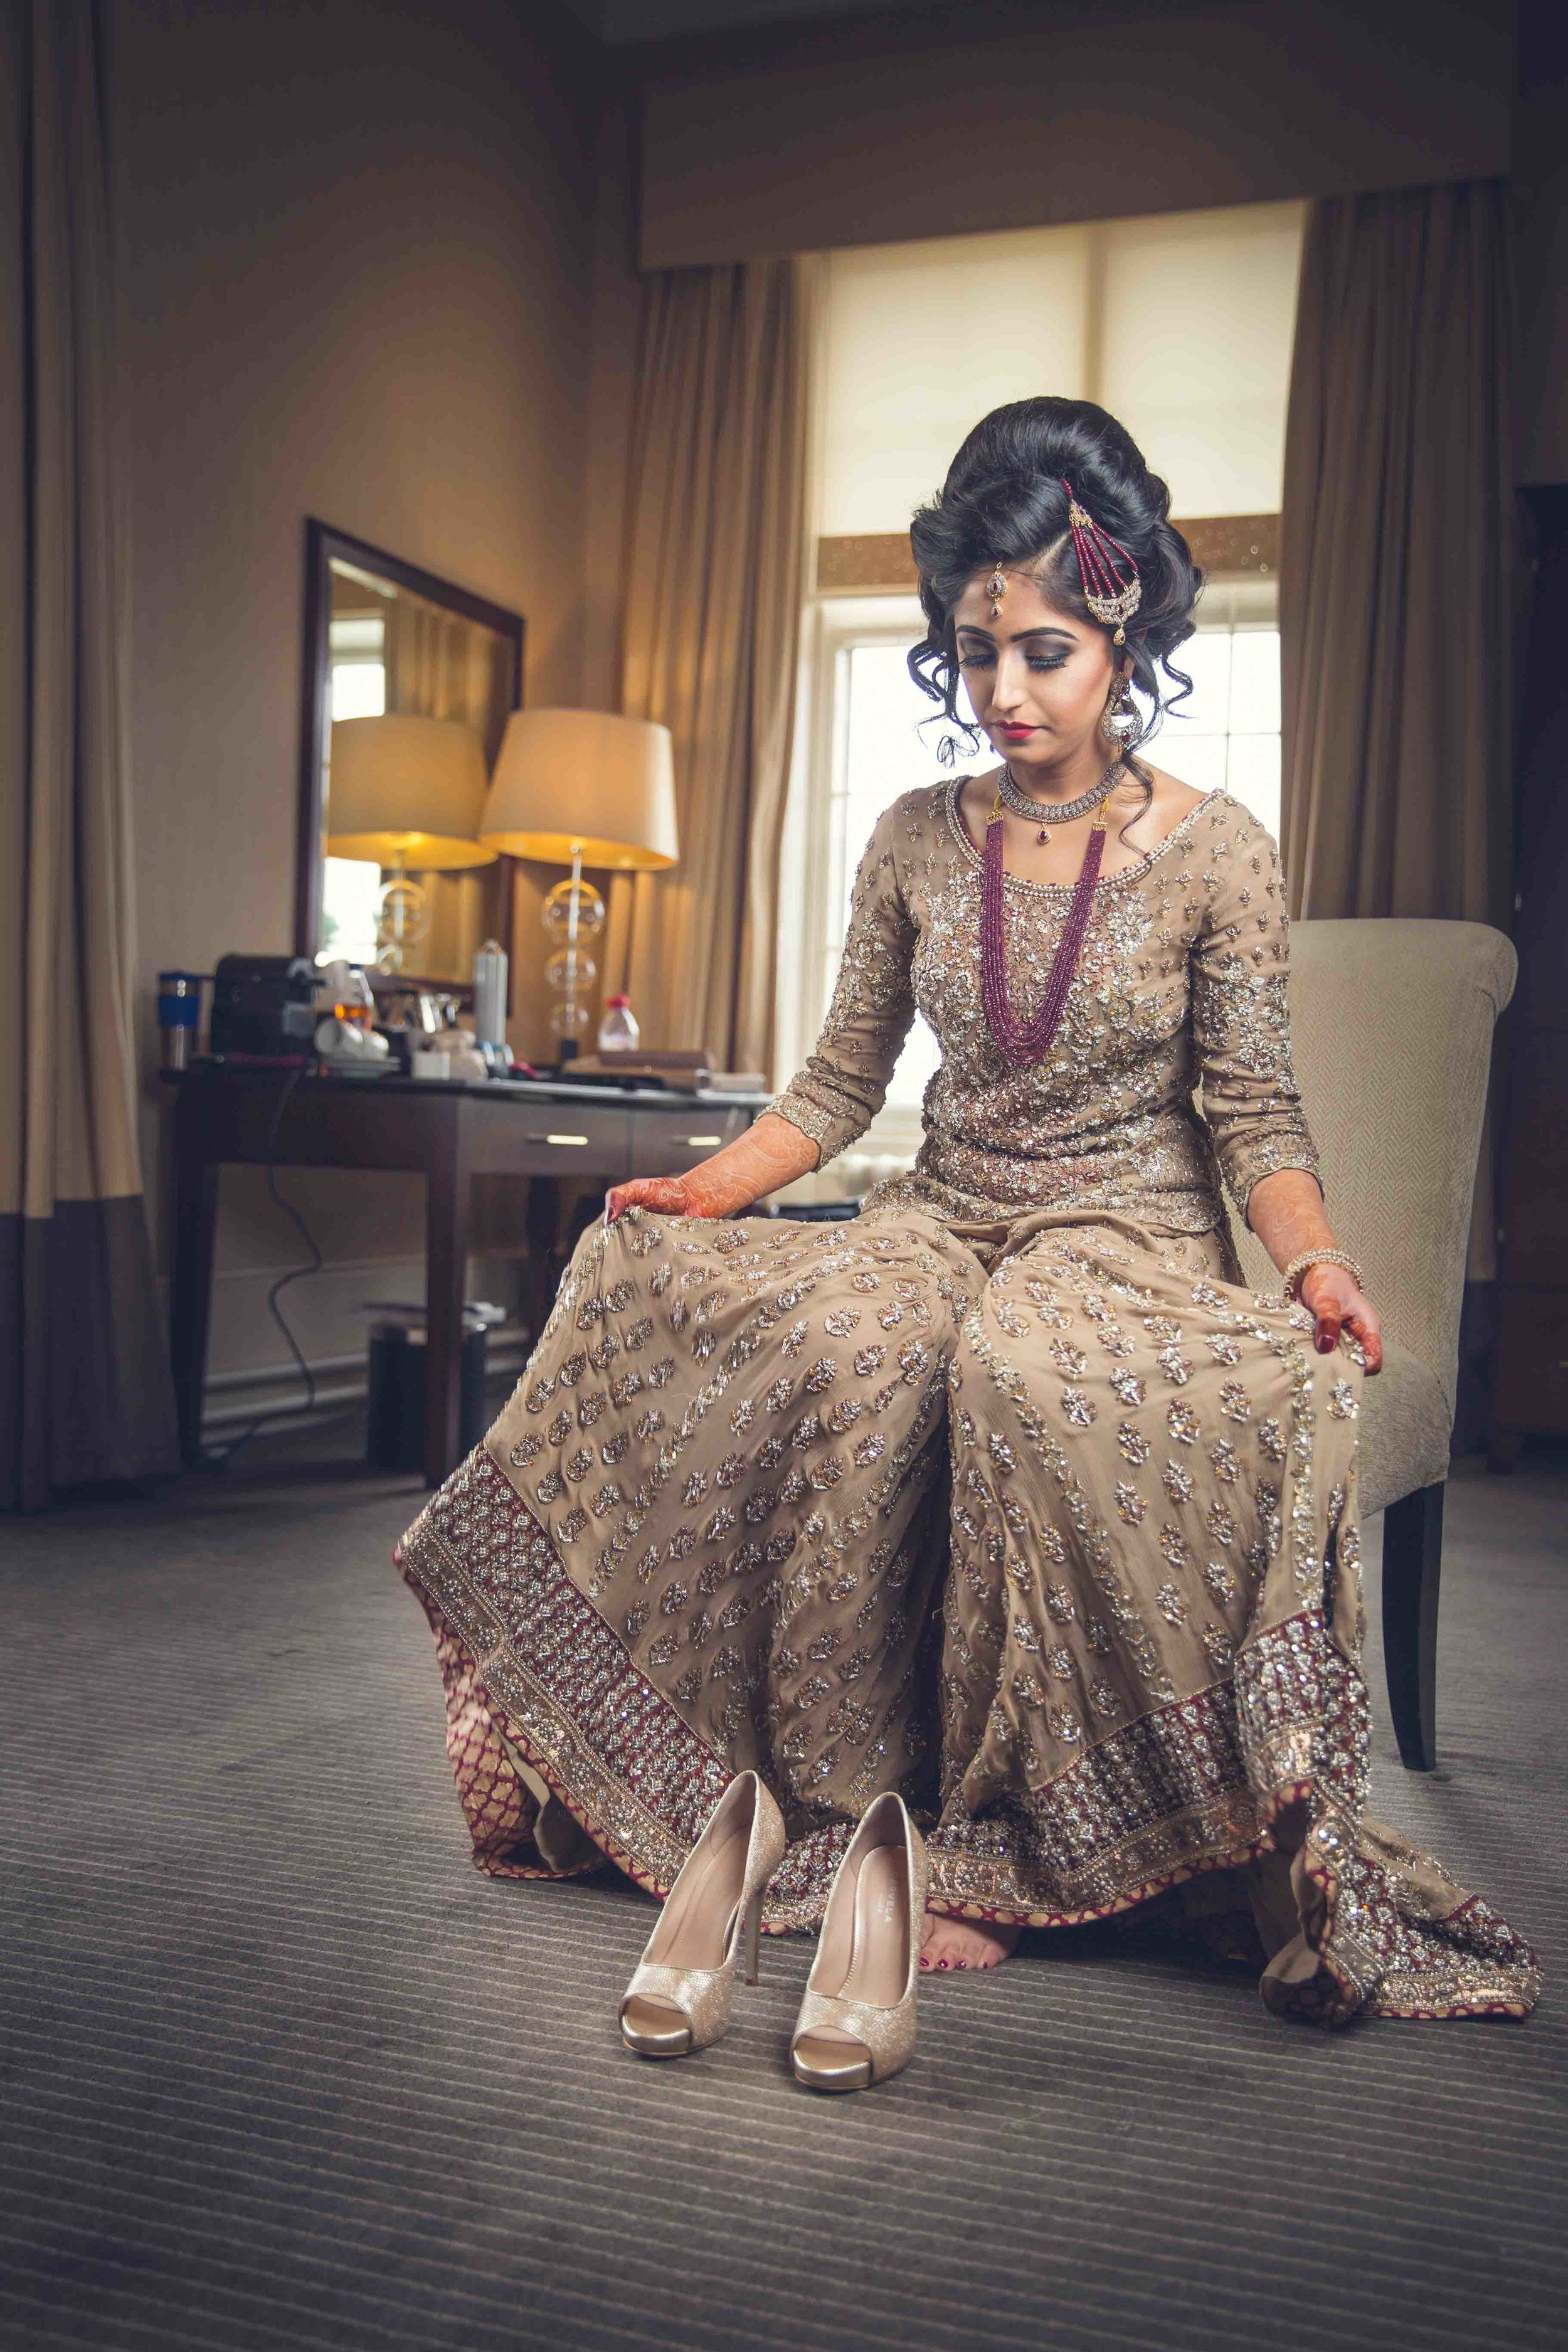 Opu Sultan Photography Asian wedding photography scotland edinburgh glasgow manchester birmingham london-242.jpg